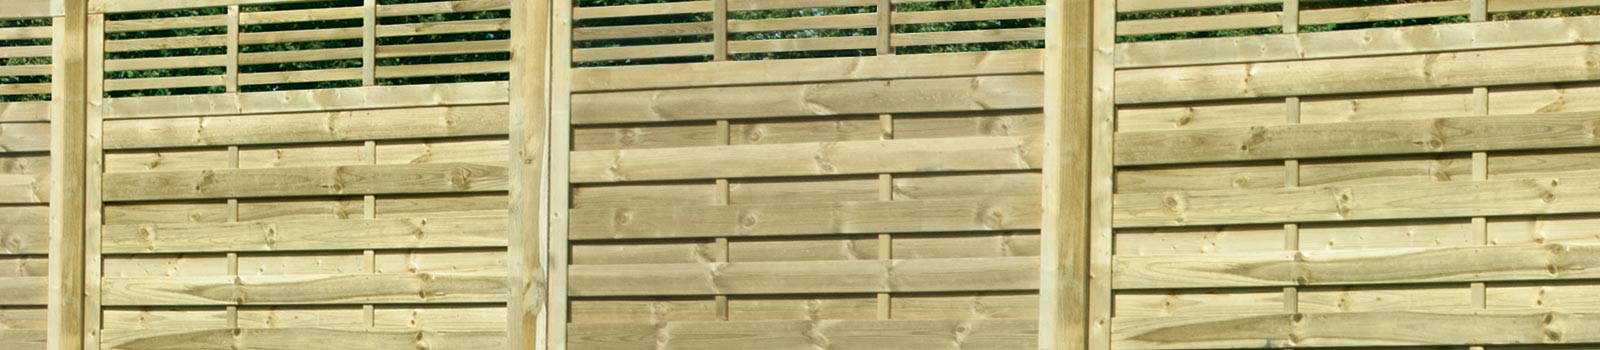 Fencing - elite slatted top